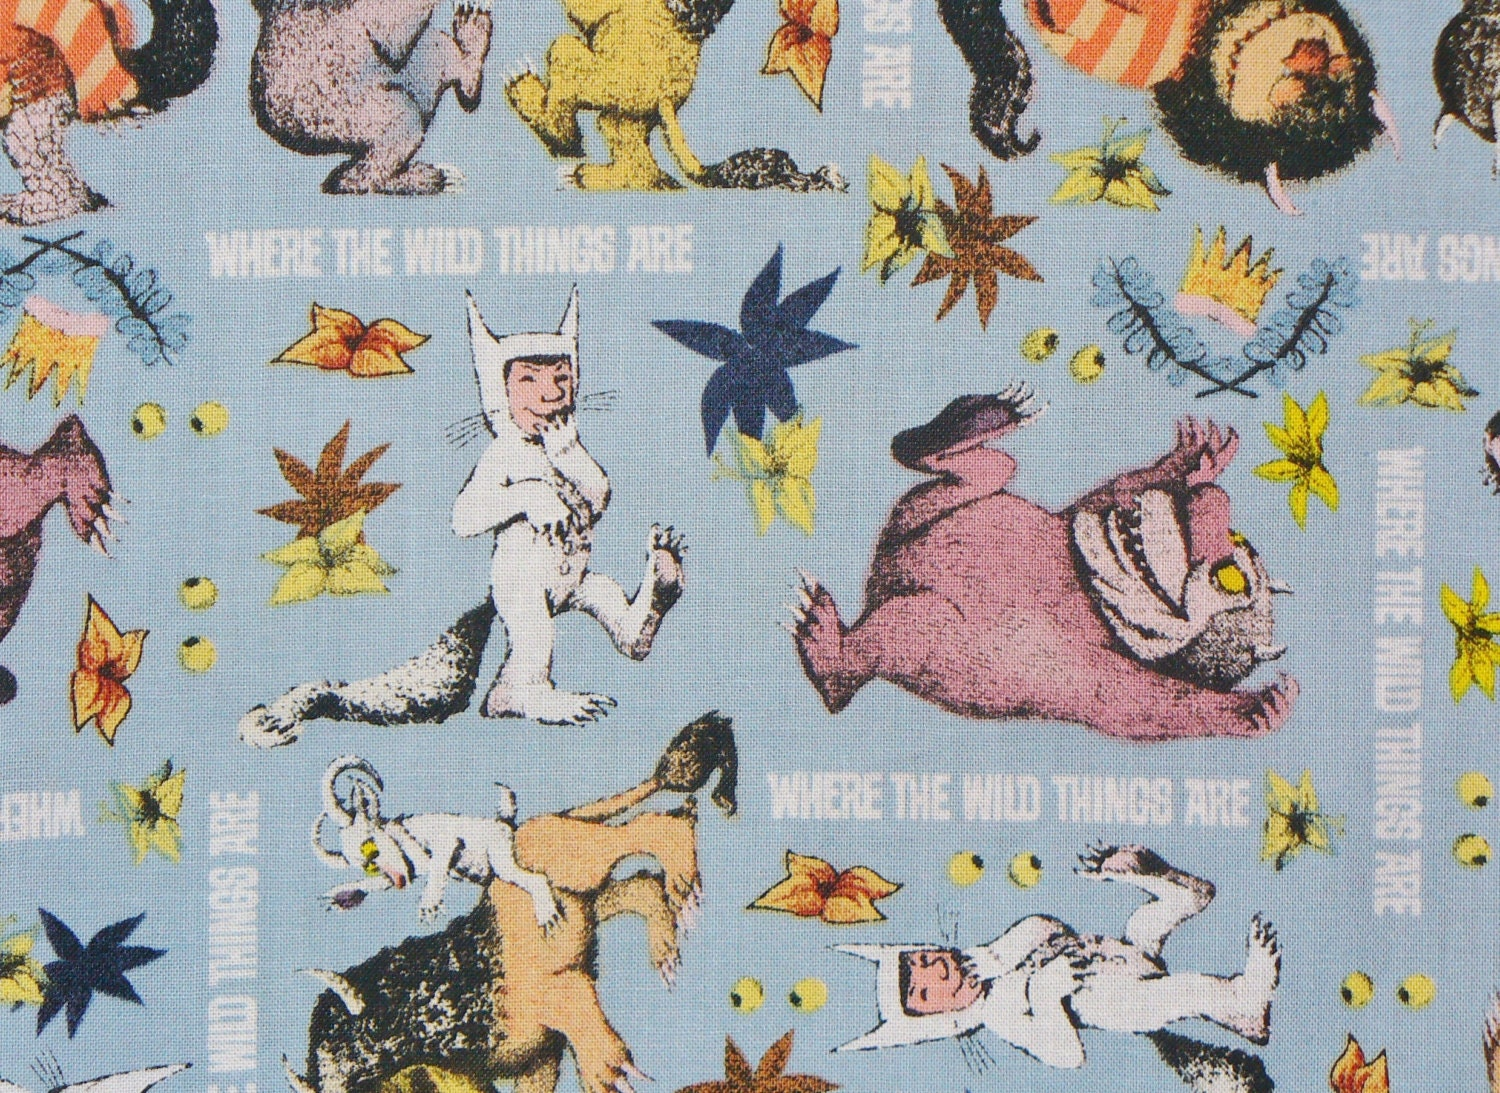 coloring book fabric by the yard where the wild things are childhood book max creatures